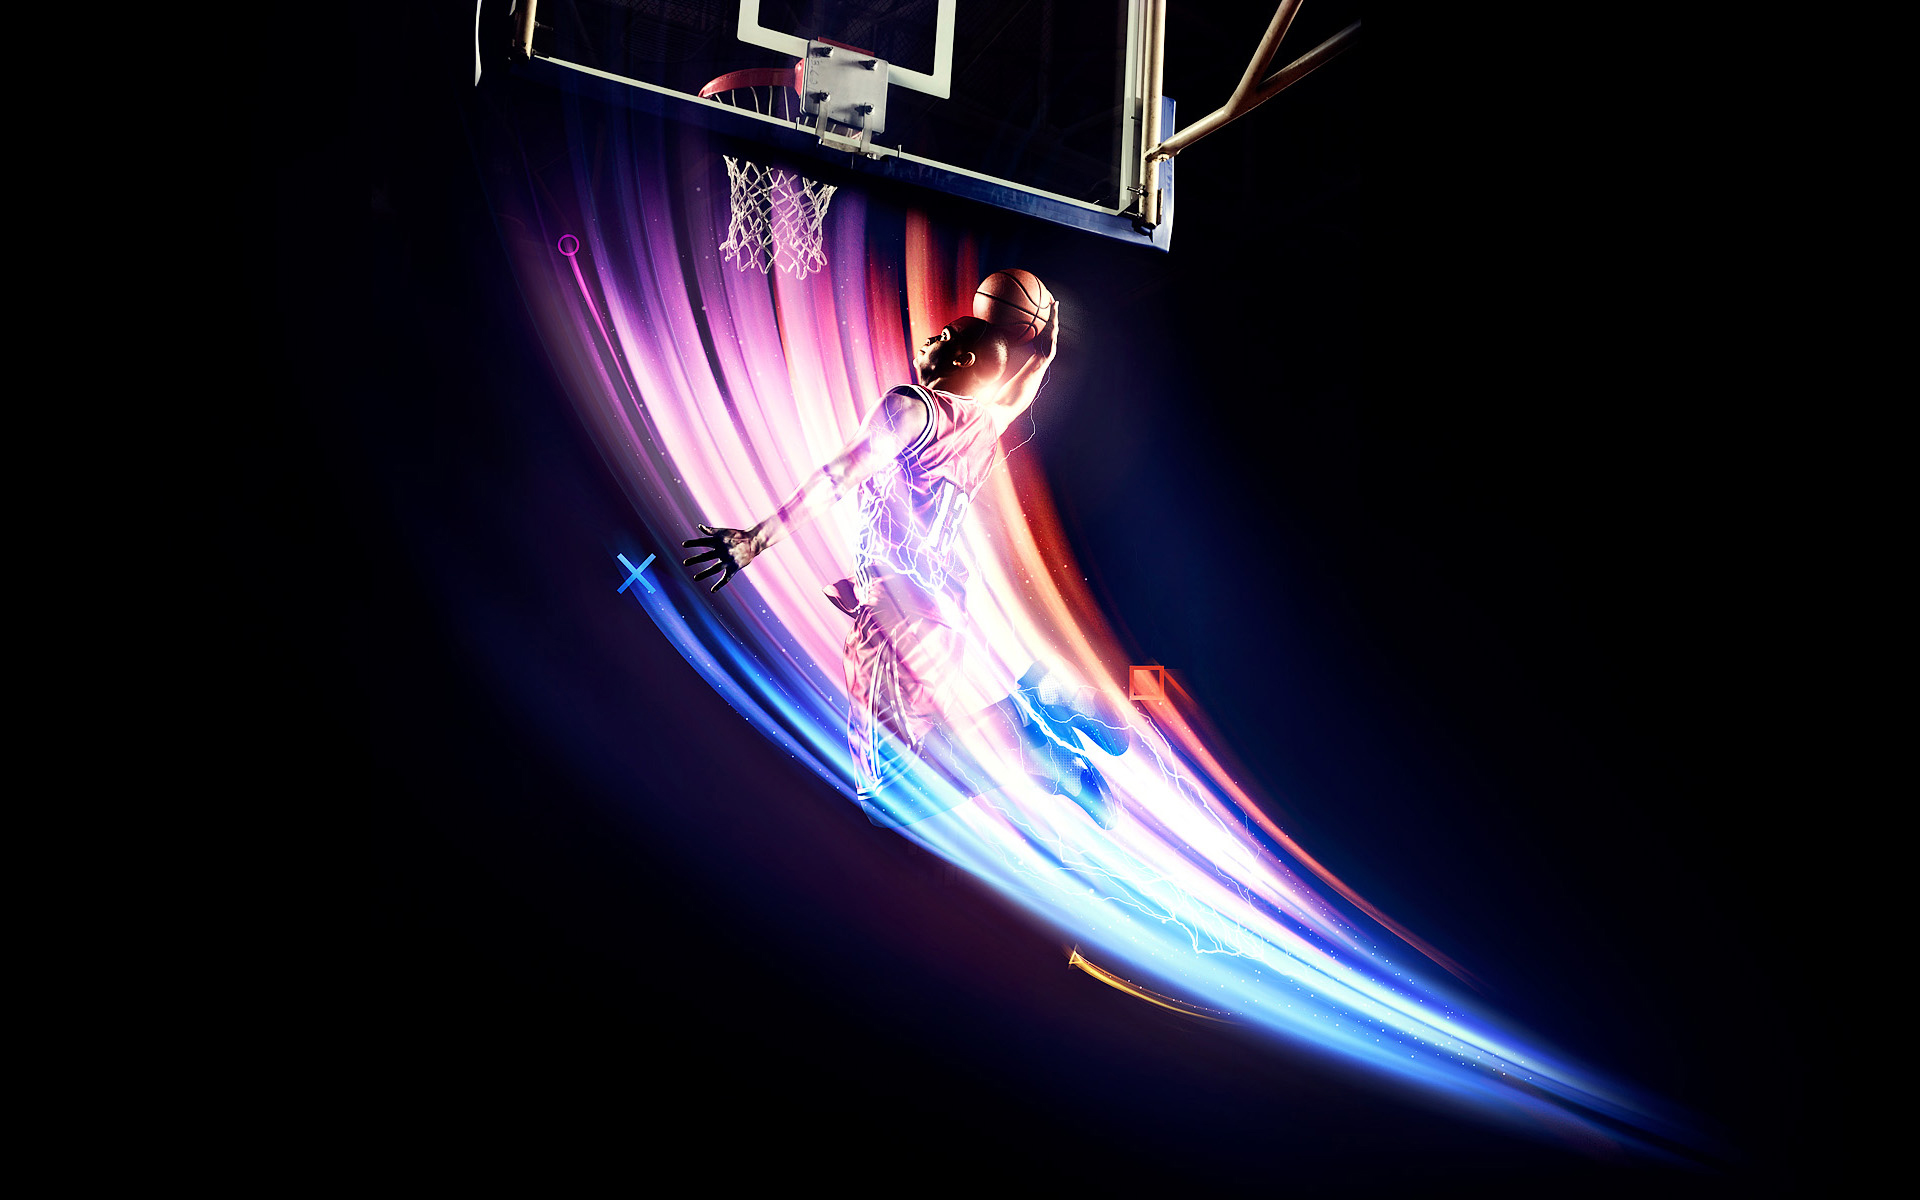 pics photos basketball backround on basketball hd 1080p